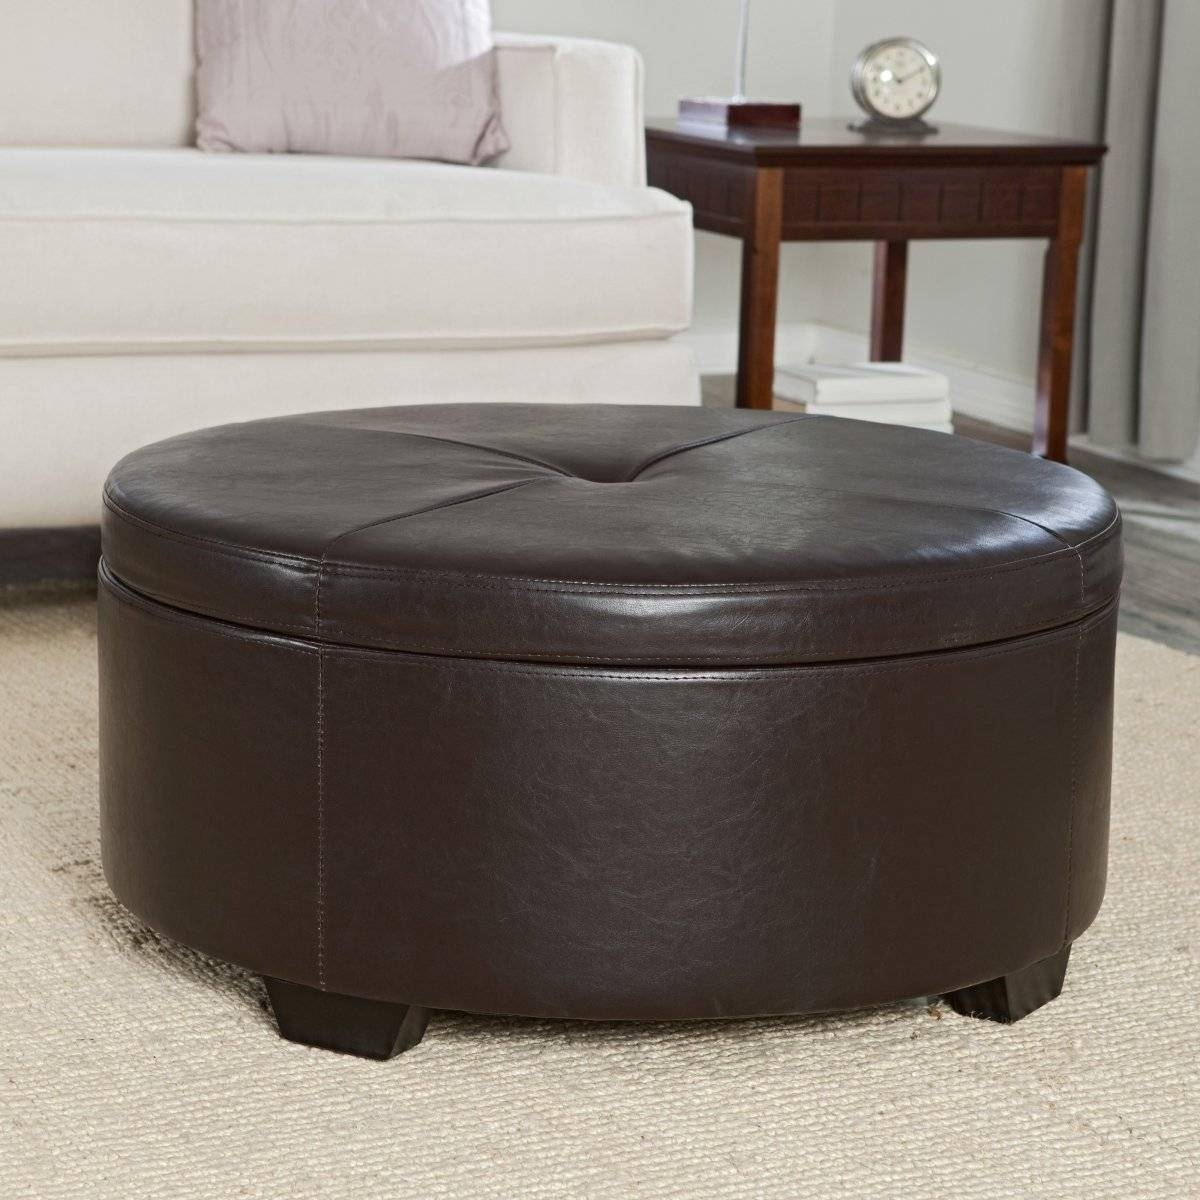 Round Coffee Table With Seats Underneath The Round Coffee Table intended for Circular Coffee Tables With Storage (Image 23 of 30)